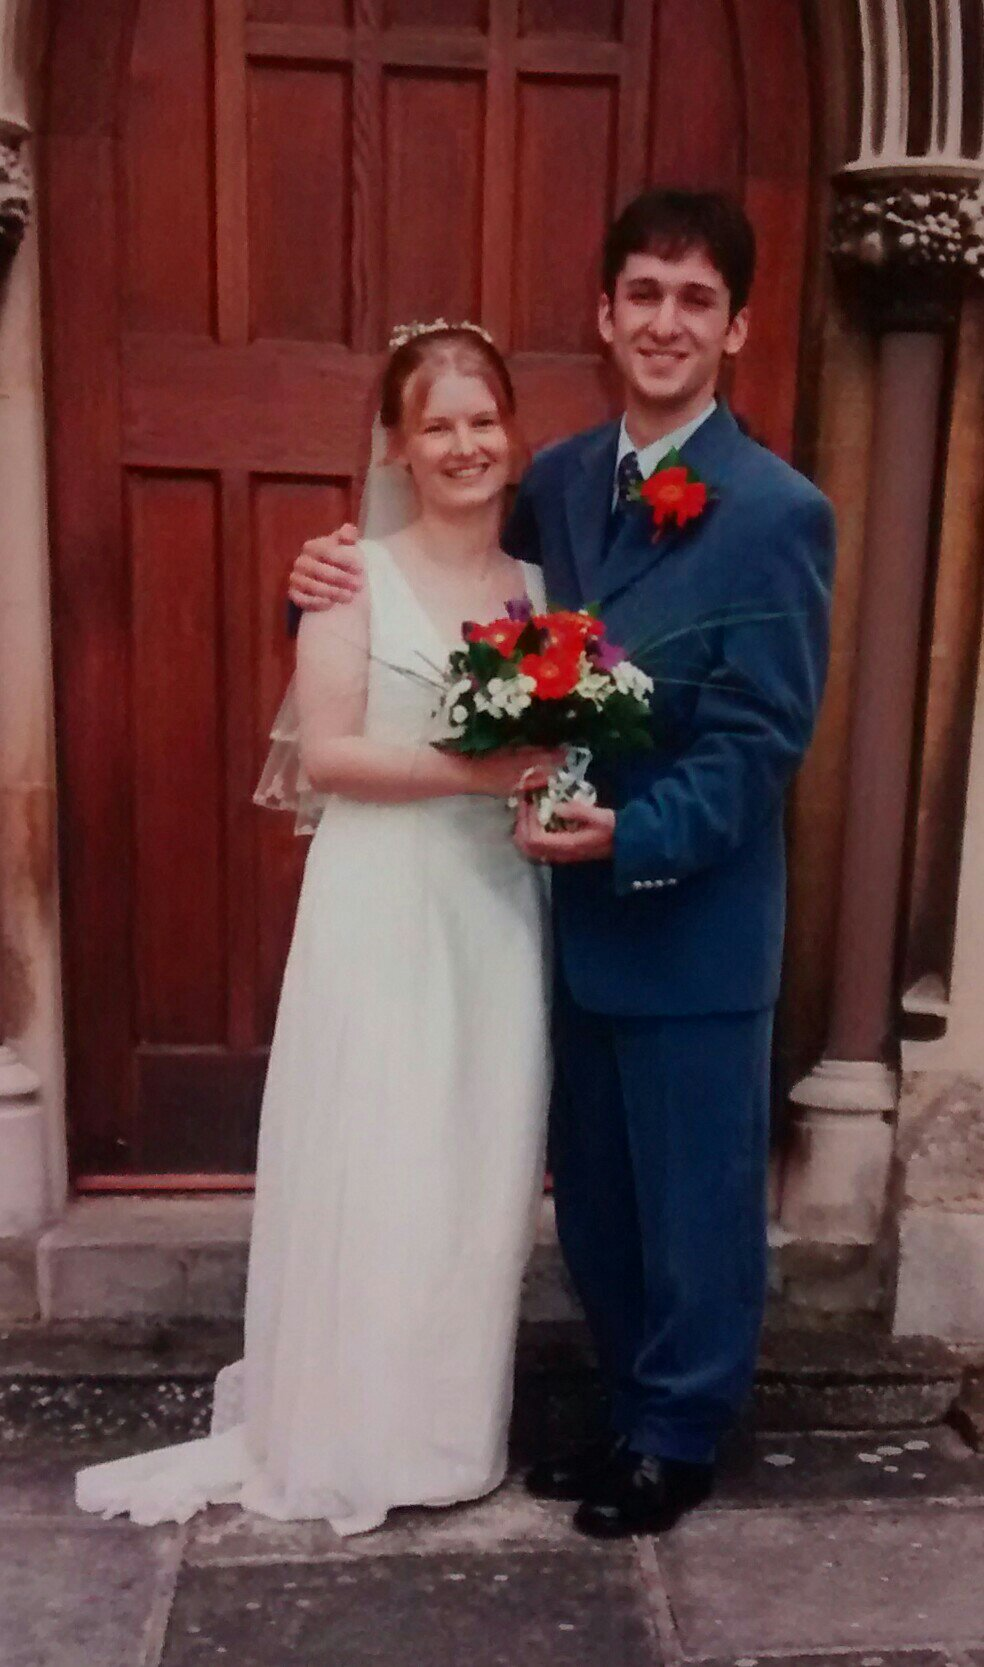 a bronze wedding anniversary (19 years)